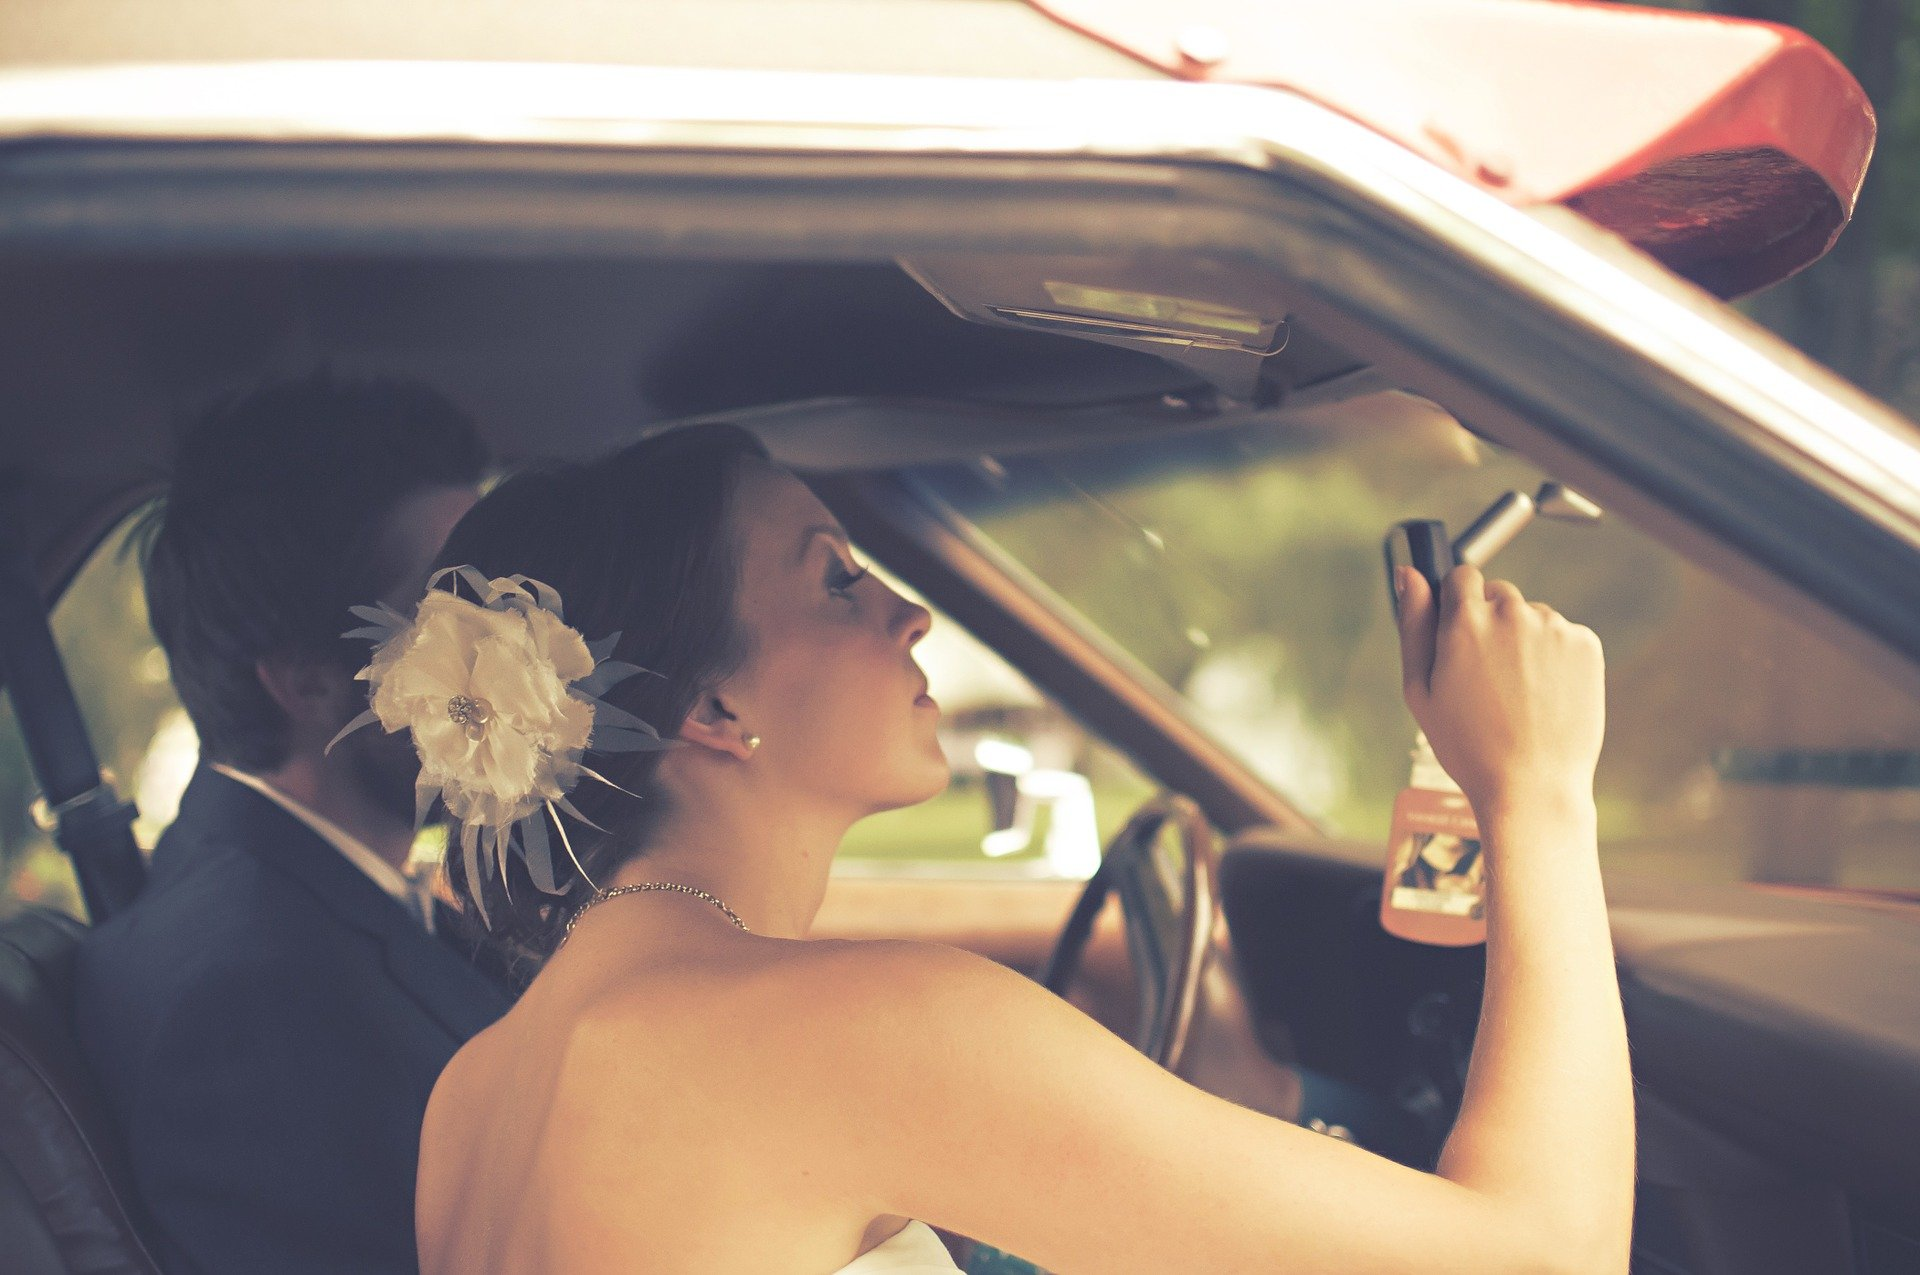 A couple sitting in a car while the woman looks at herself in the rearview mirror   Photo: Pixabay/Scott Webb